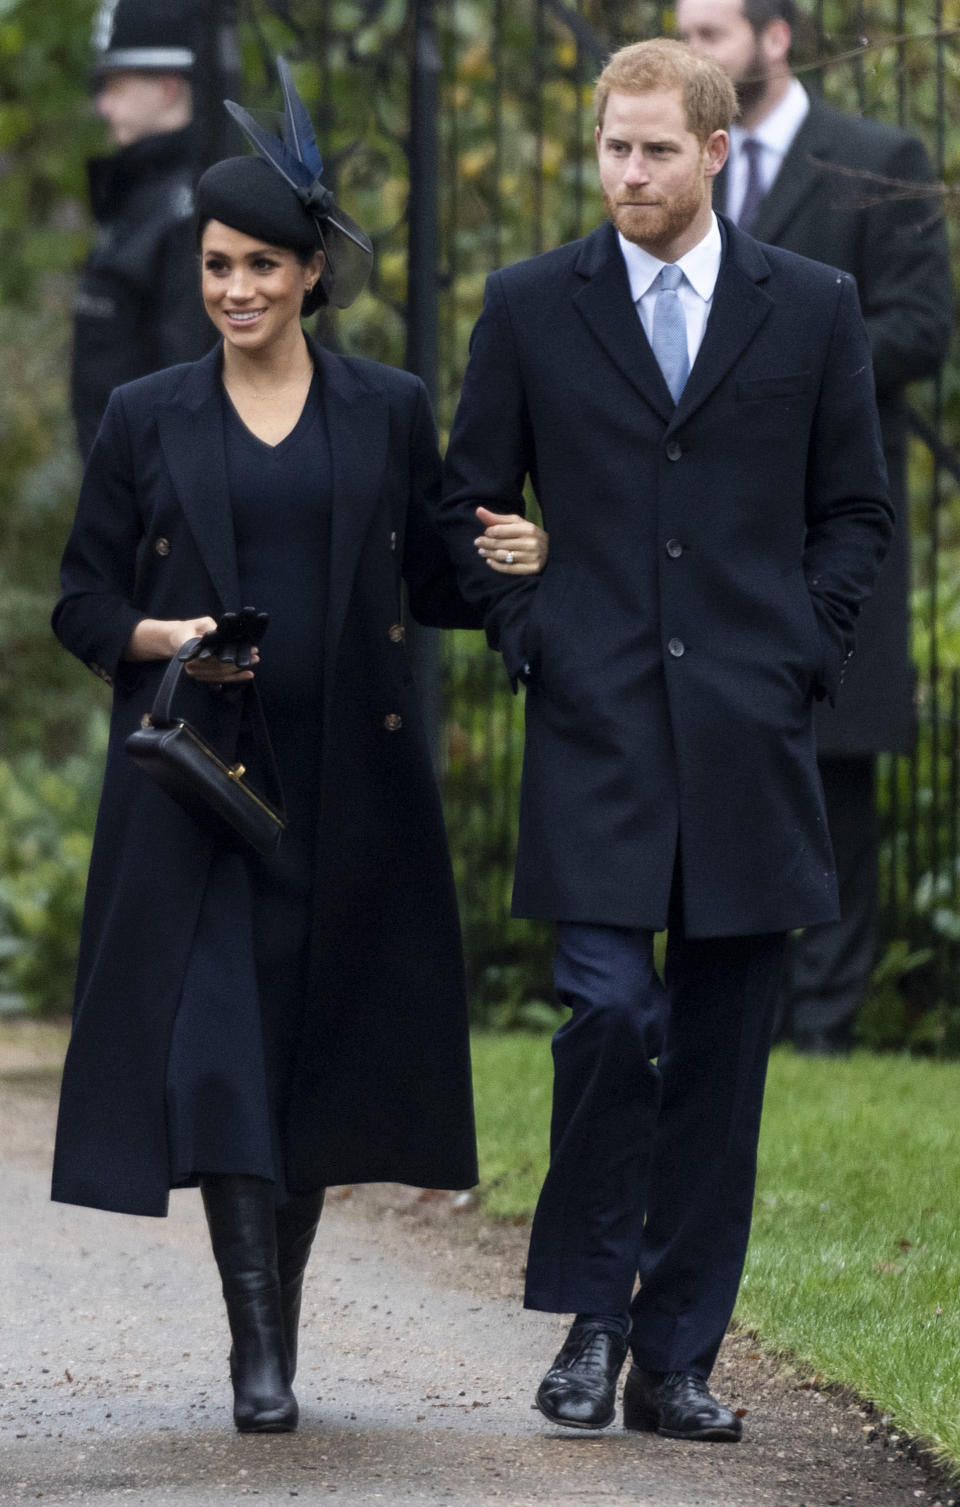 <p>On Christmas Day 2018, the 37-year-old wore a £1250 woolen dress by Victoria Beckham to church. She paired it with a £1550 structured 'Powder' box bag and a slim tailored wool coat (both also by the British designer). A Awon Golding hat completed the look. <em>[Photo: Getty]</em> </p>